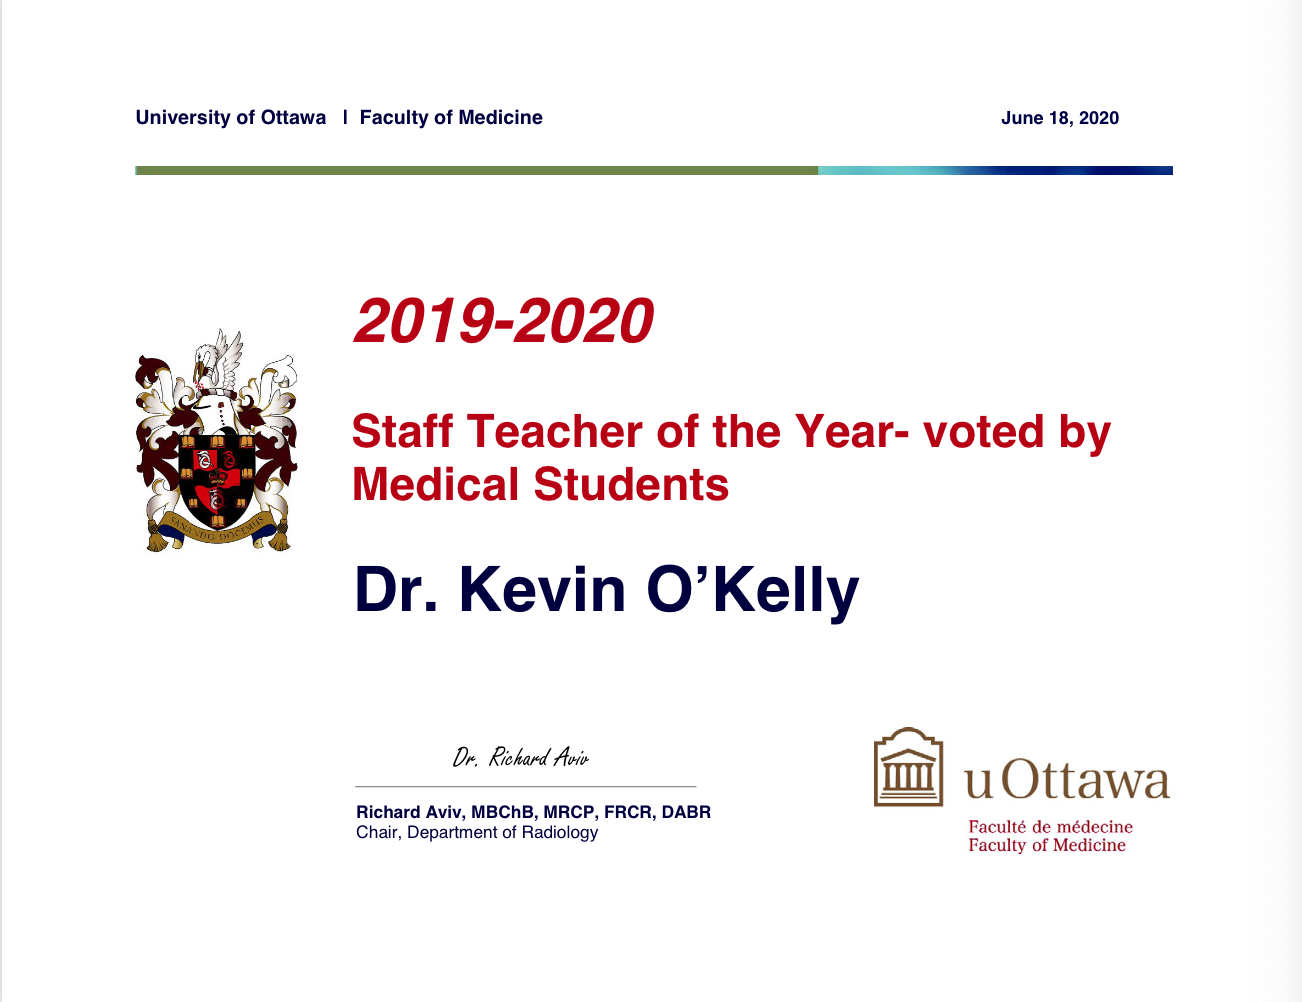 2019-2020 Staff Teacher of the Year - Voted by the Medical Students. Winner is Dr. Kevin O'Kelly